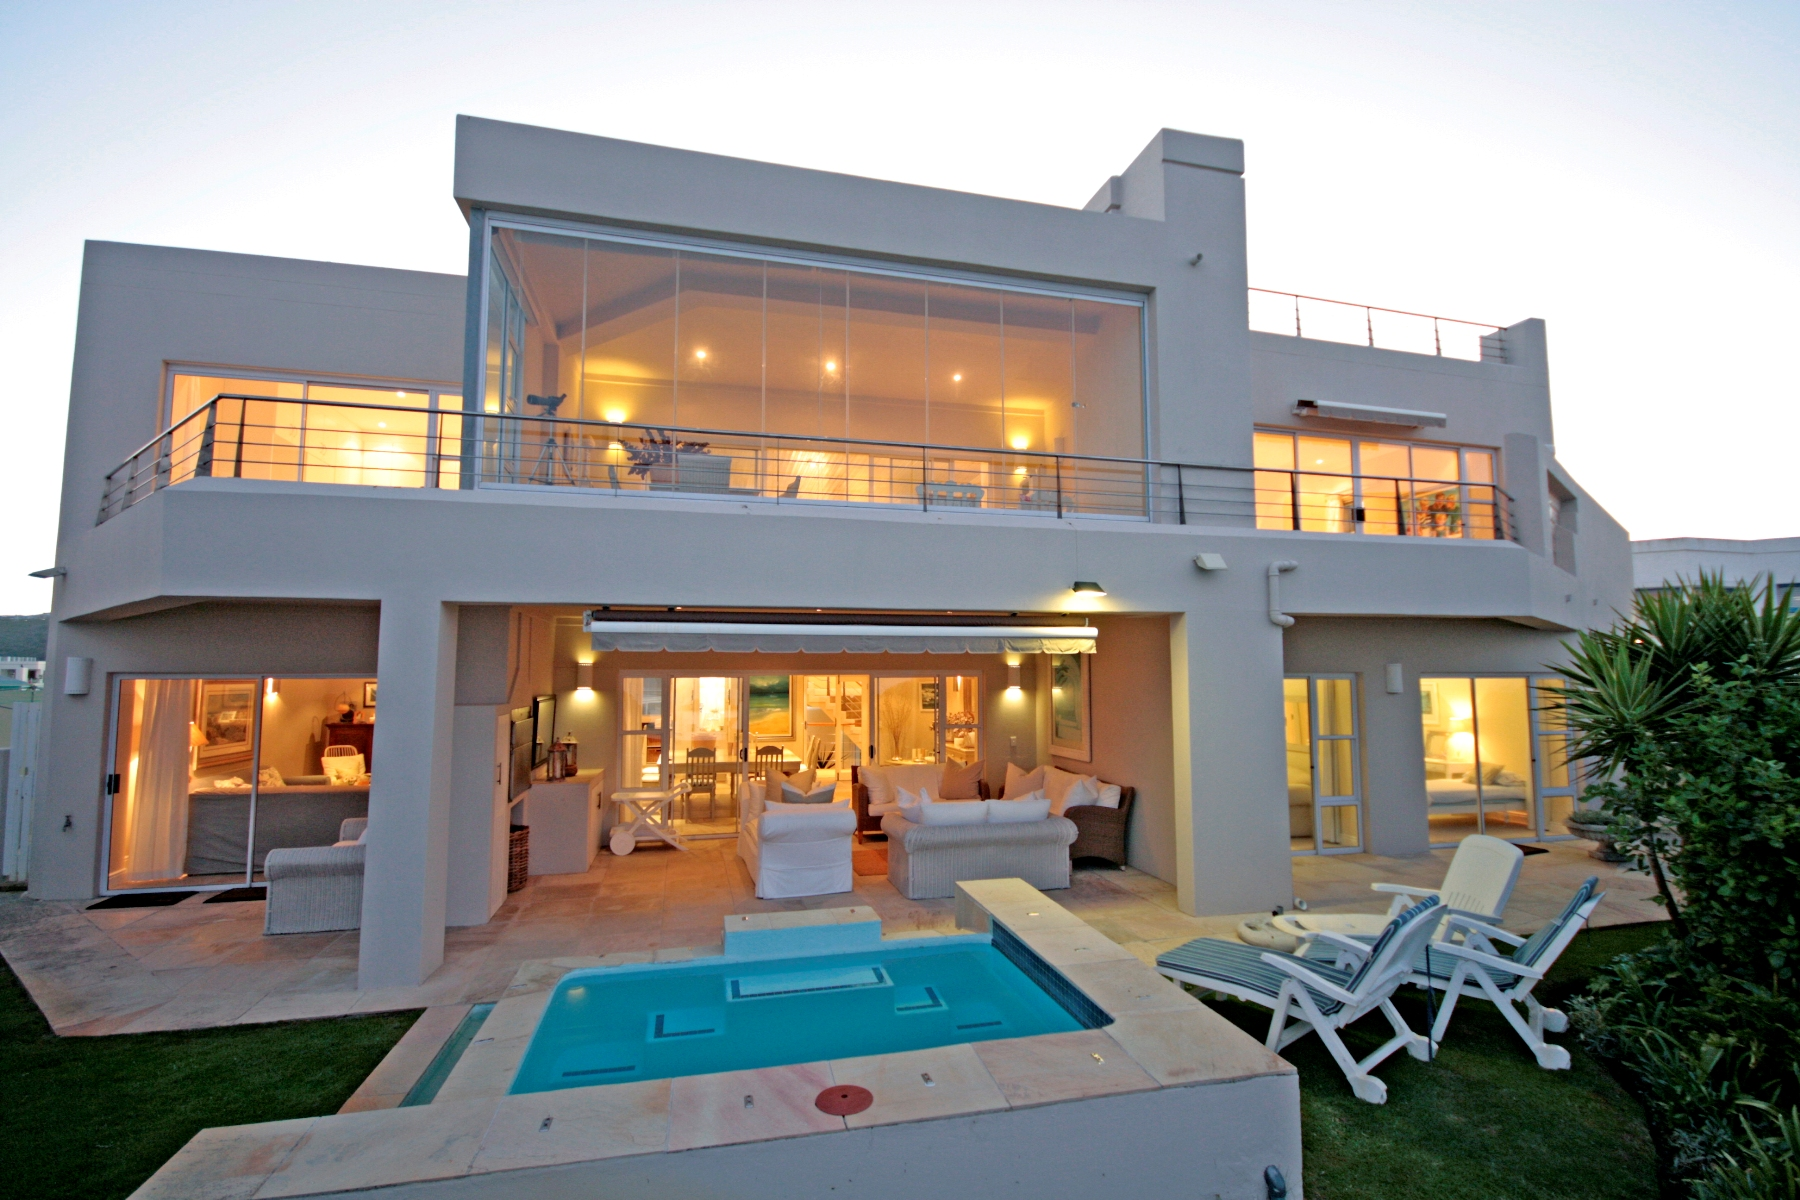 Single Family Home for Sale at Solar Beach Beauty Plettenberg Bay, Western Cape, 6600 South Africa